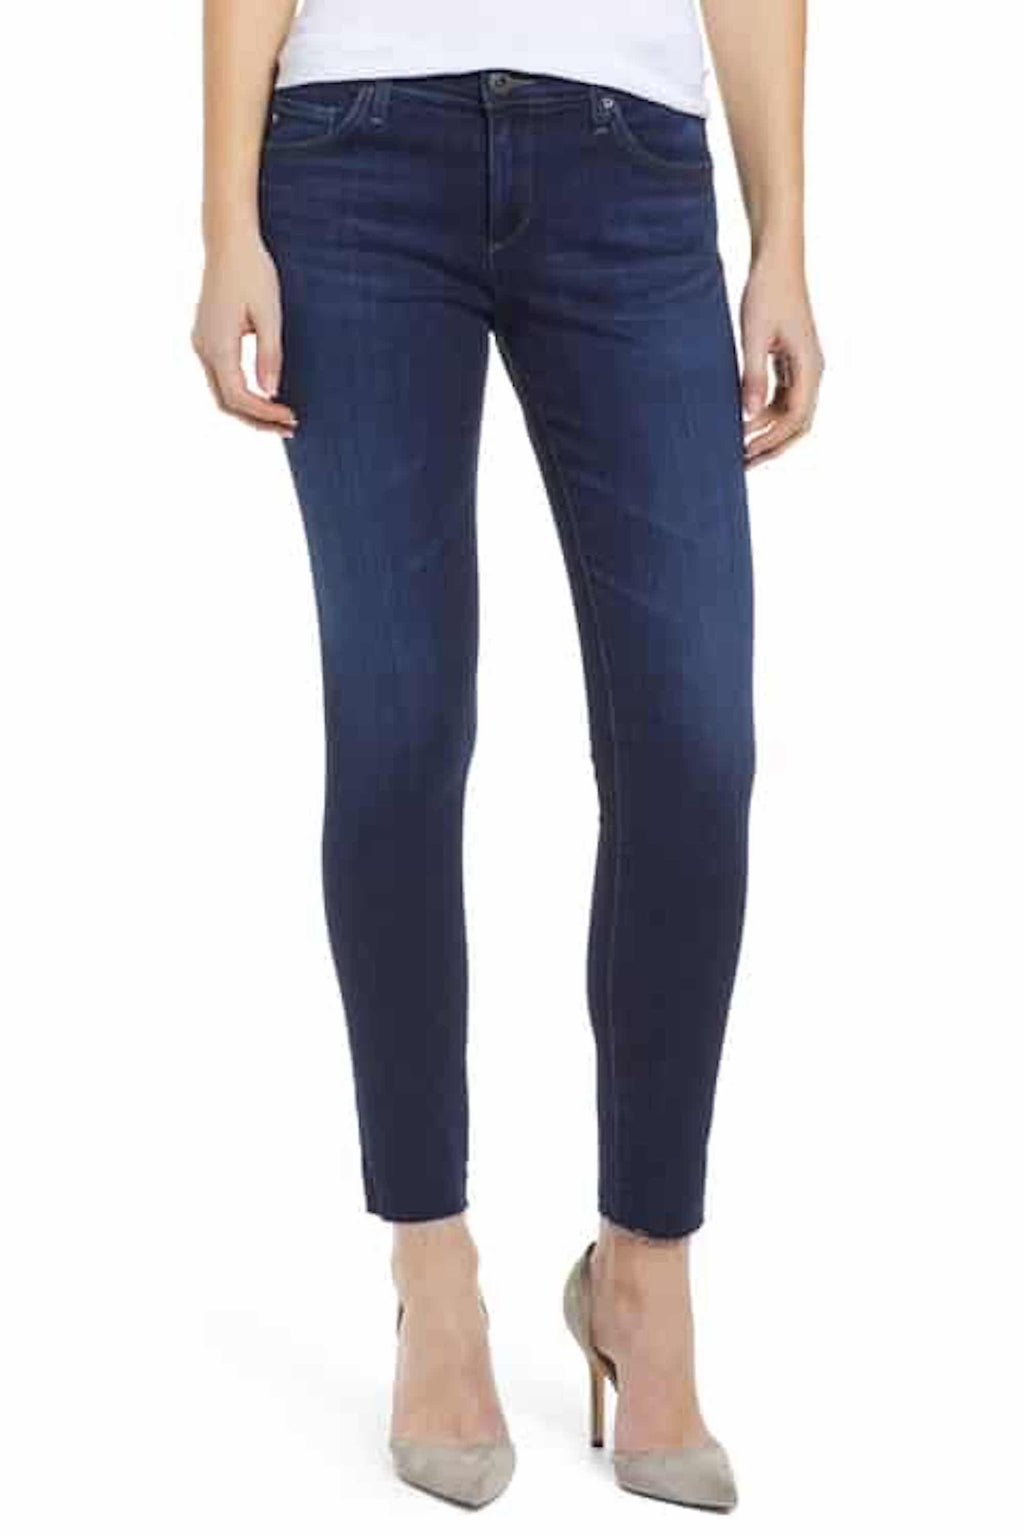 Legging Ankle Jeans - Concord